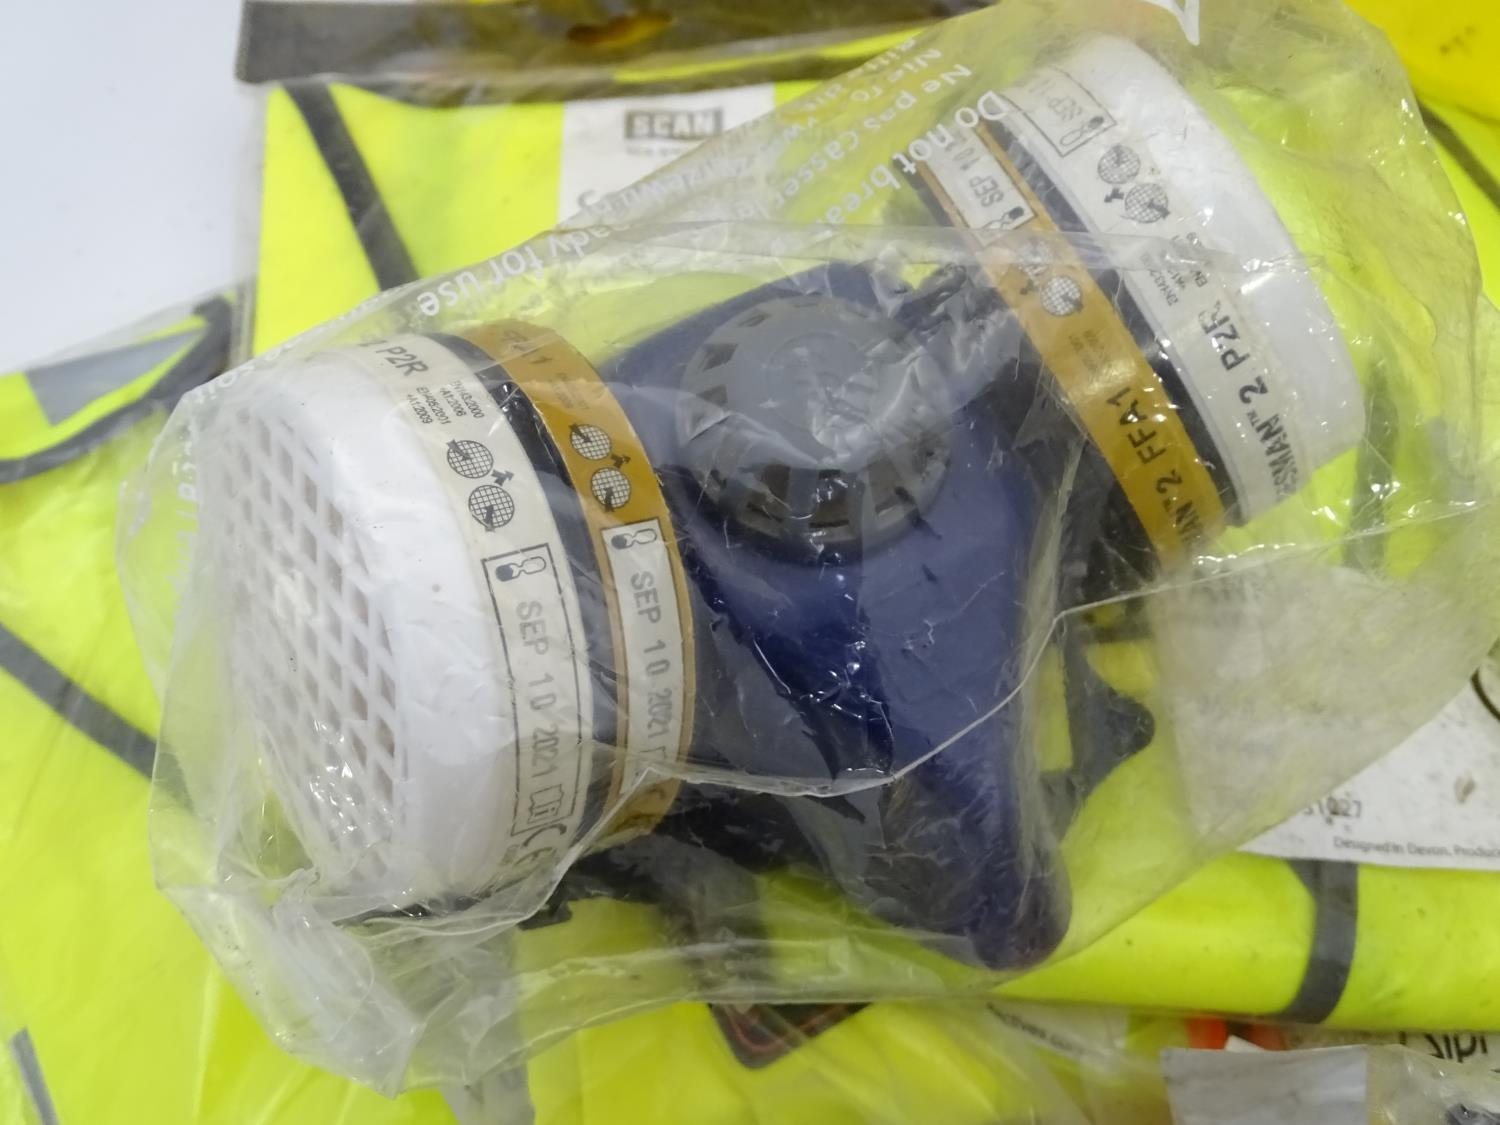 A quantity of health and safety equipment to include hard hats, safety glasses, hi vis vests etc. - Image 6 of 6